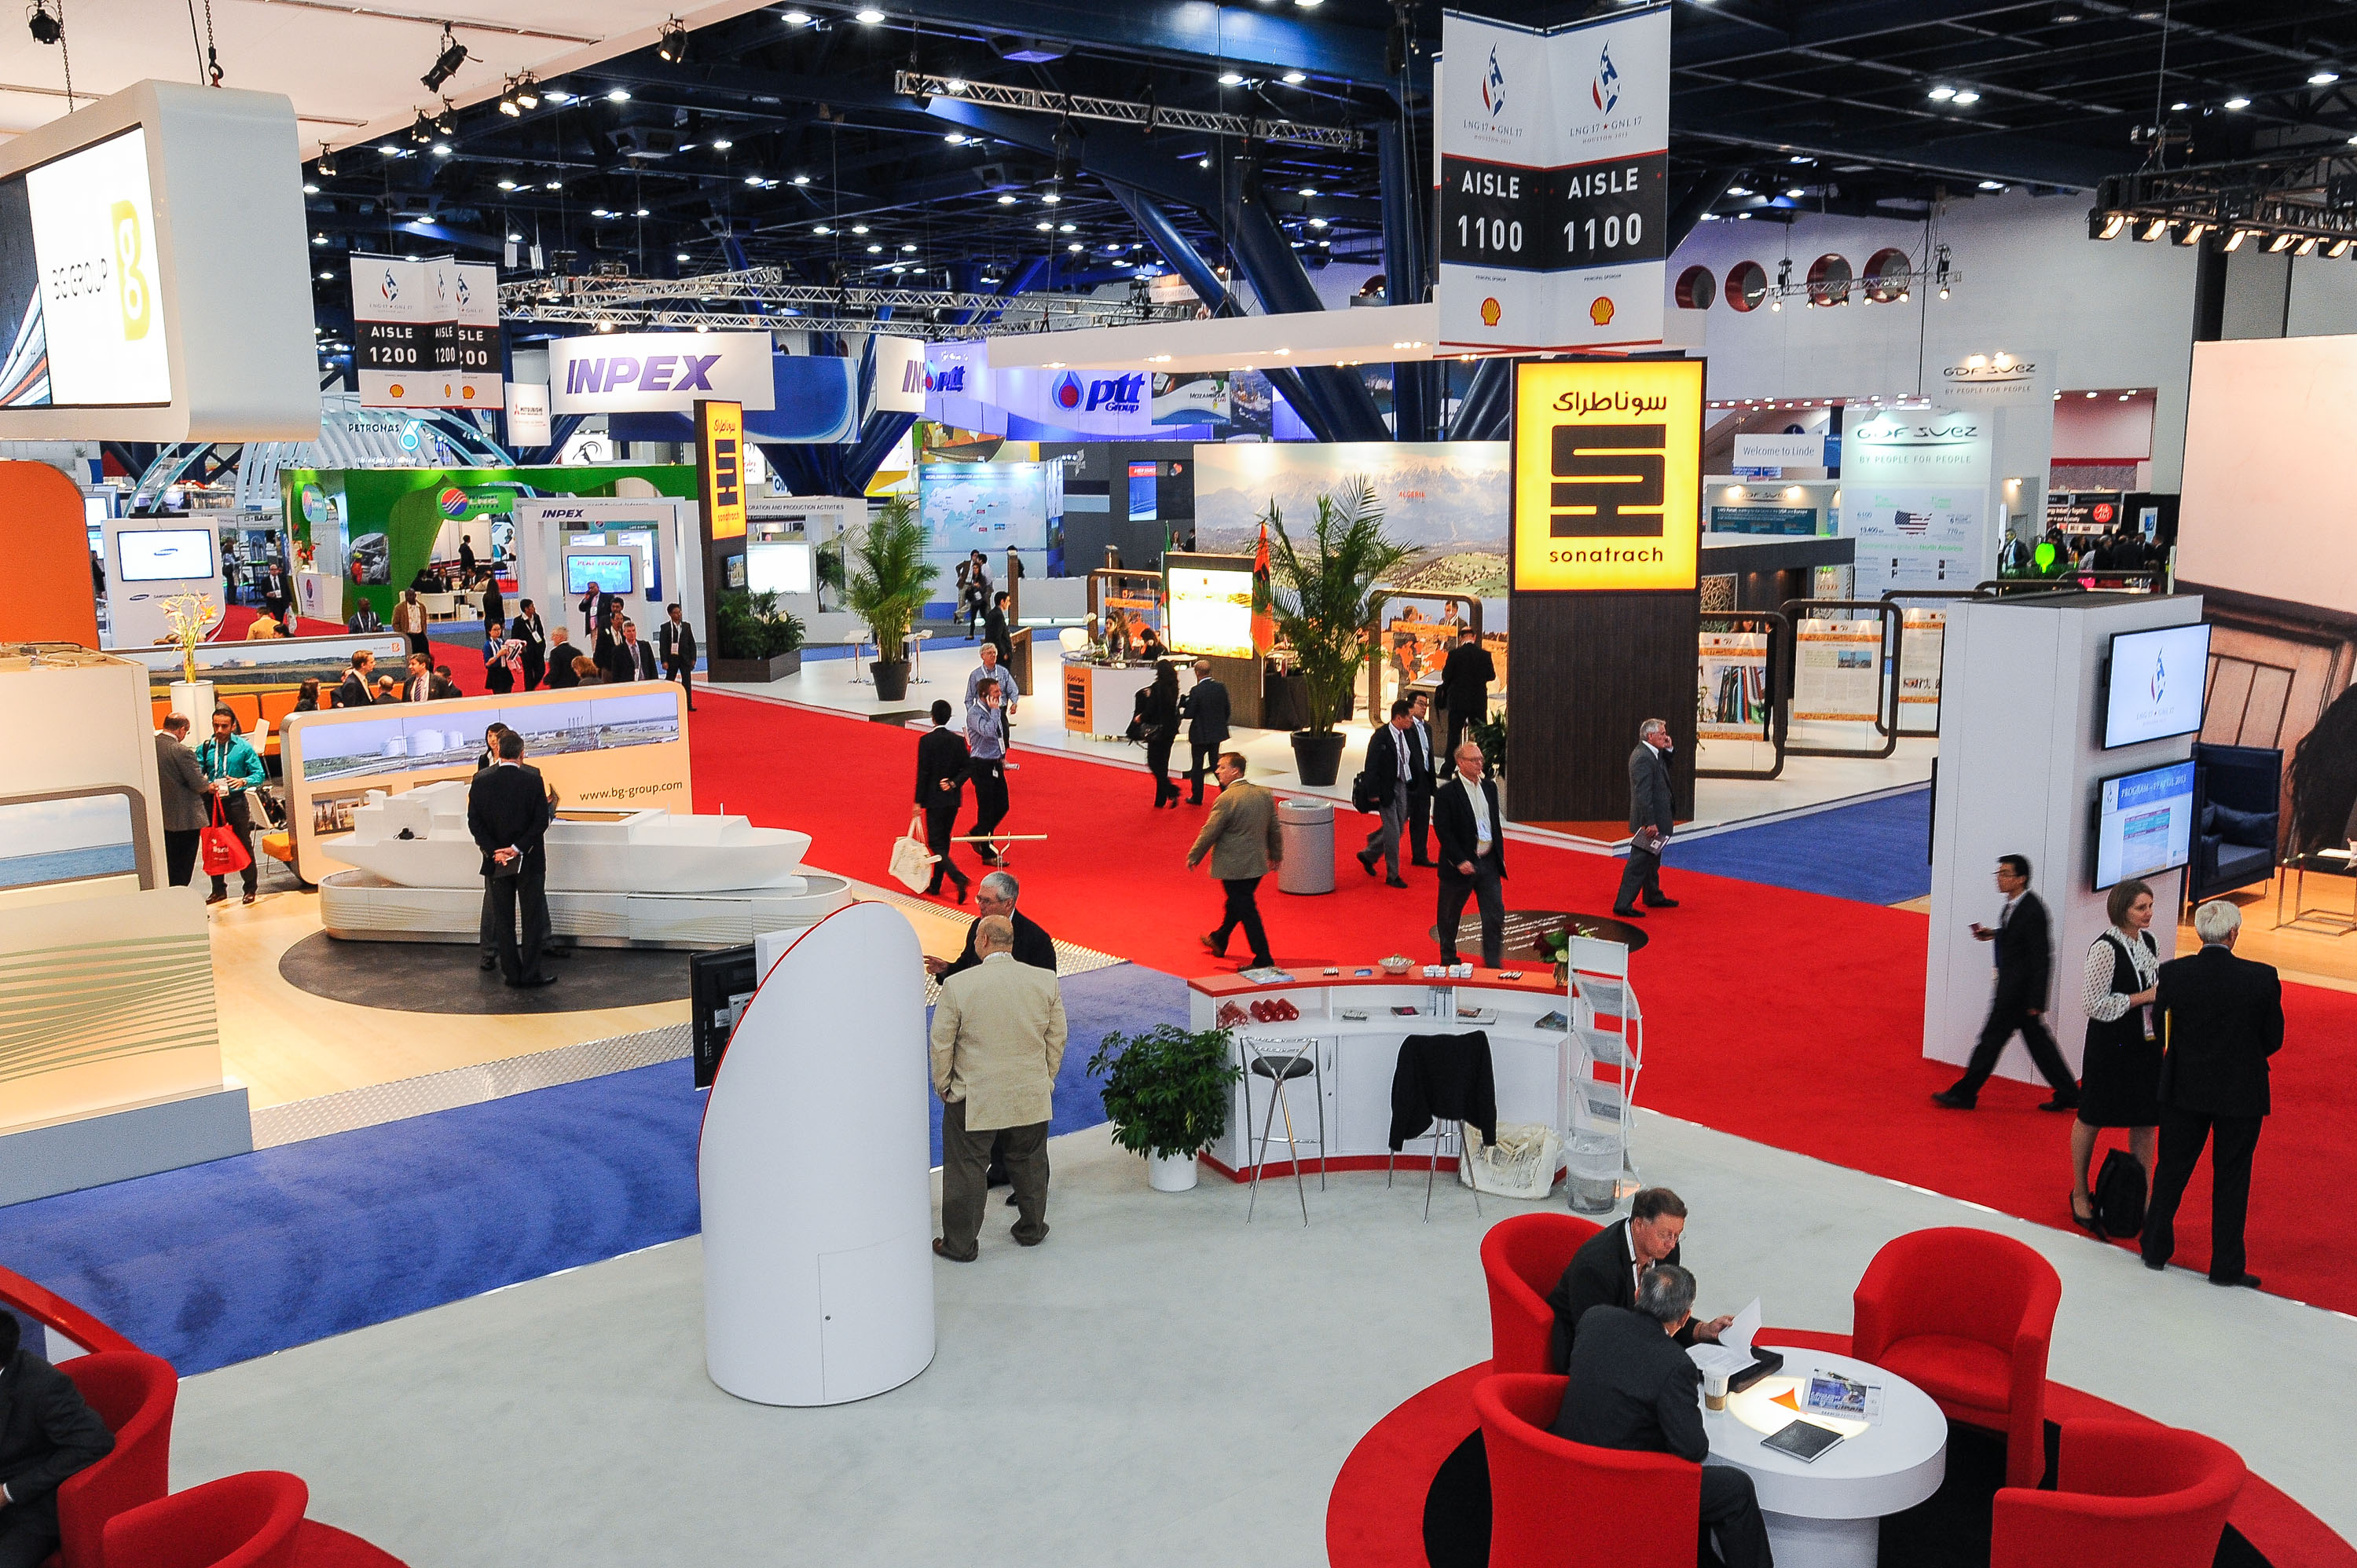 Exhibition Venues in the UK - How to Get Your Exhibition Space Work For You